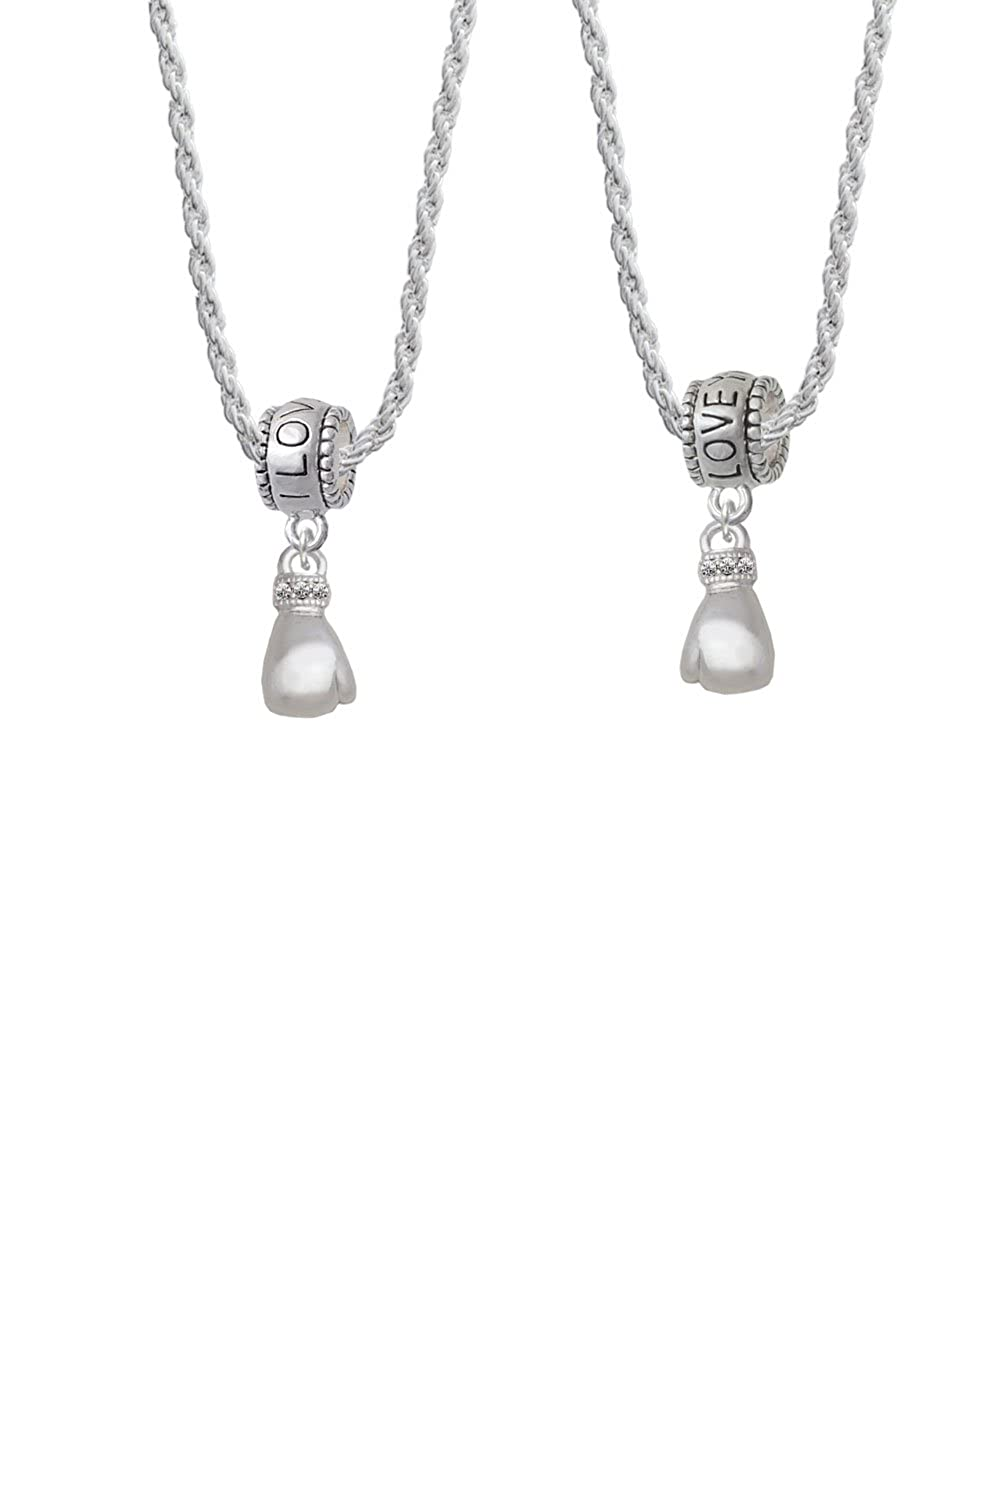 Cheer Bunny Small Boxing Glove I Love You More Bead Necklace Set of 2